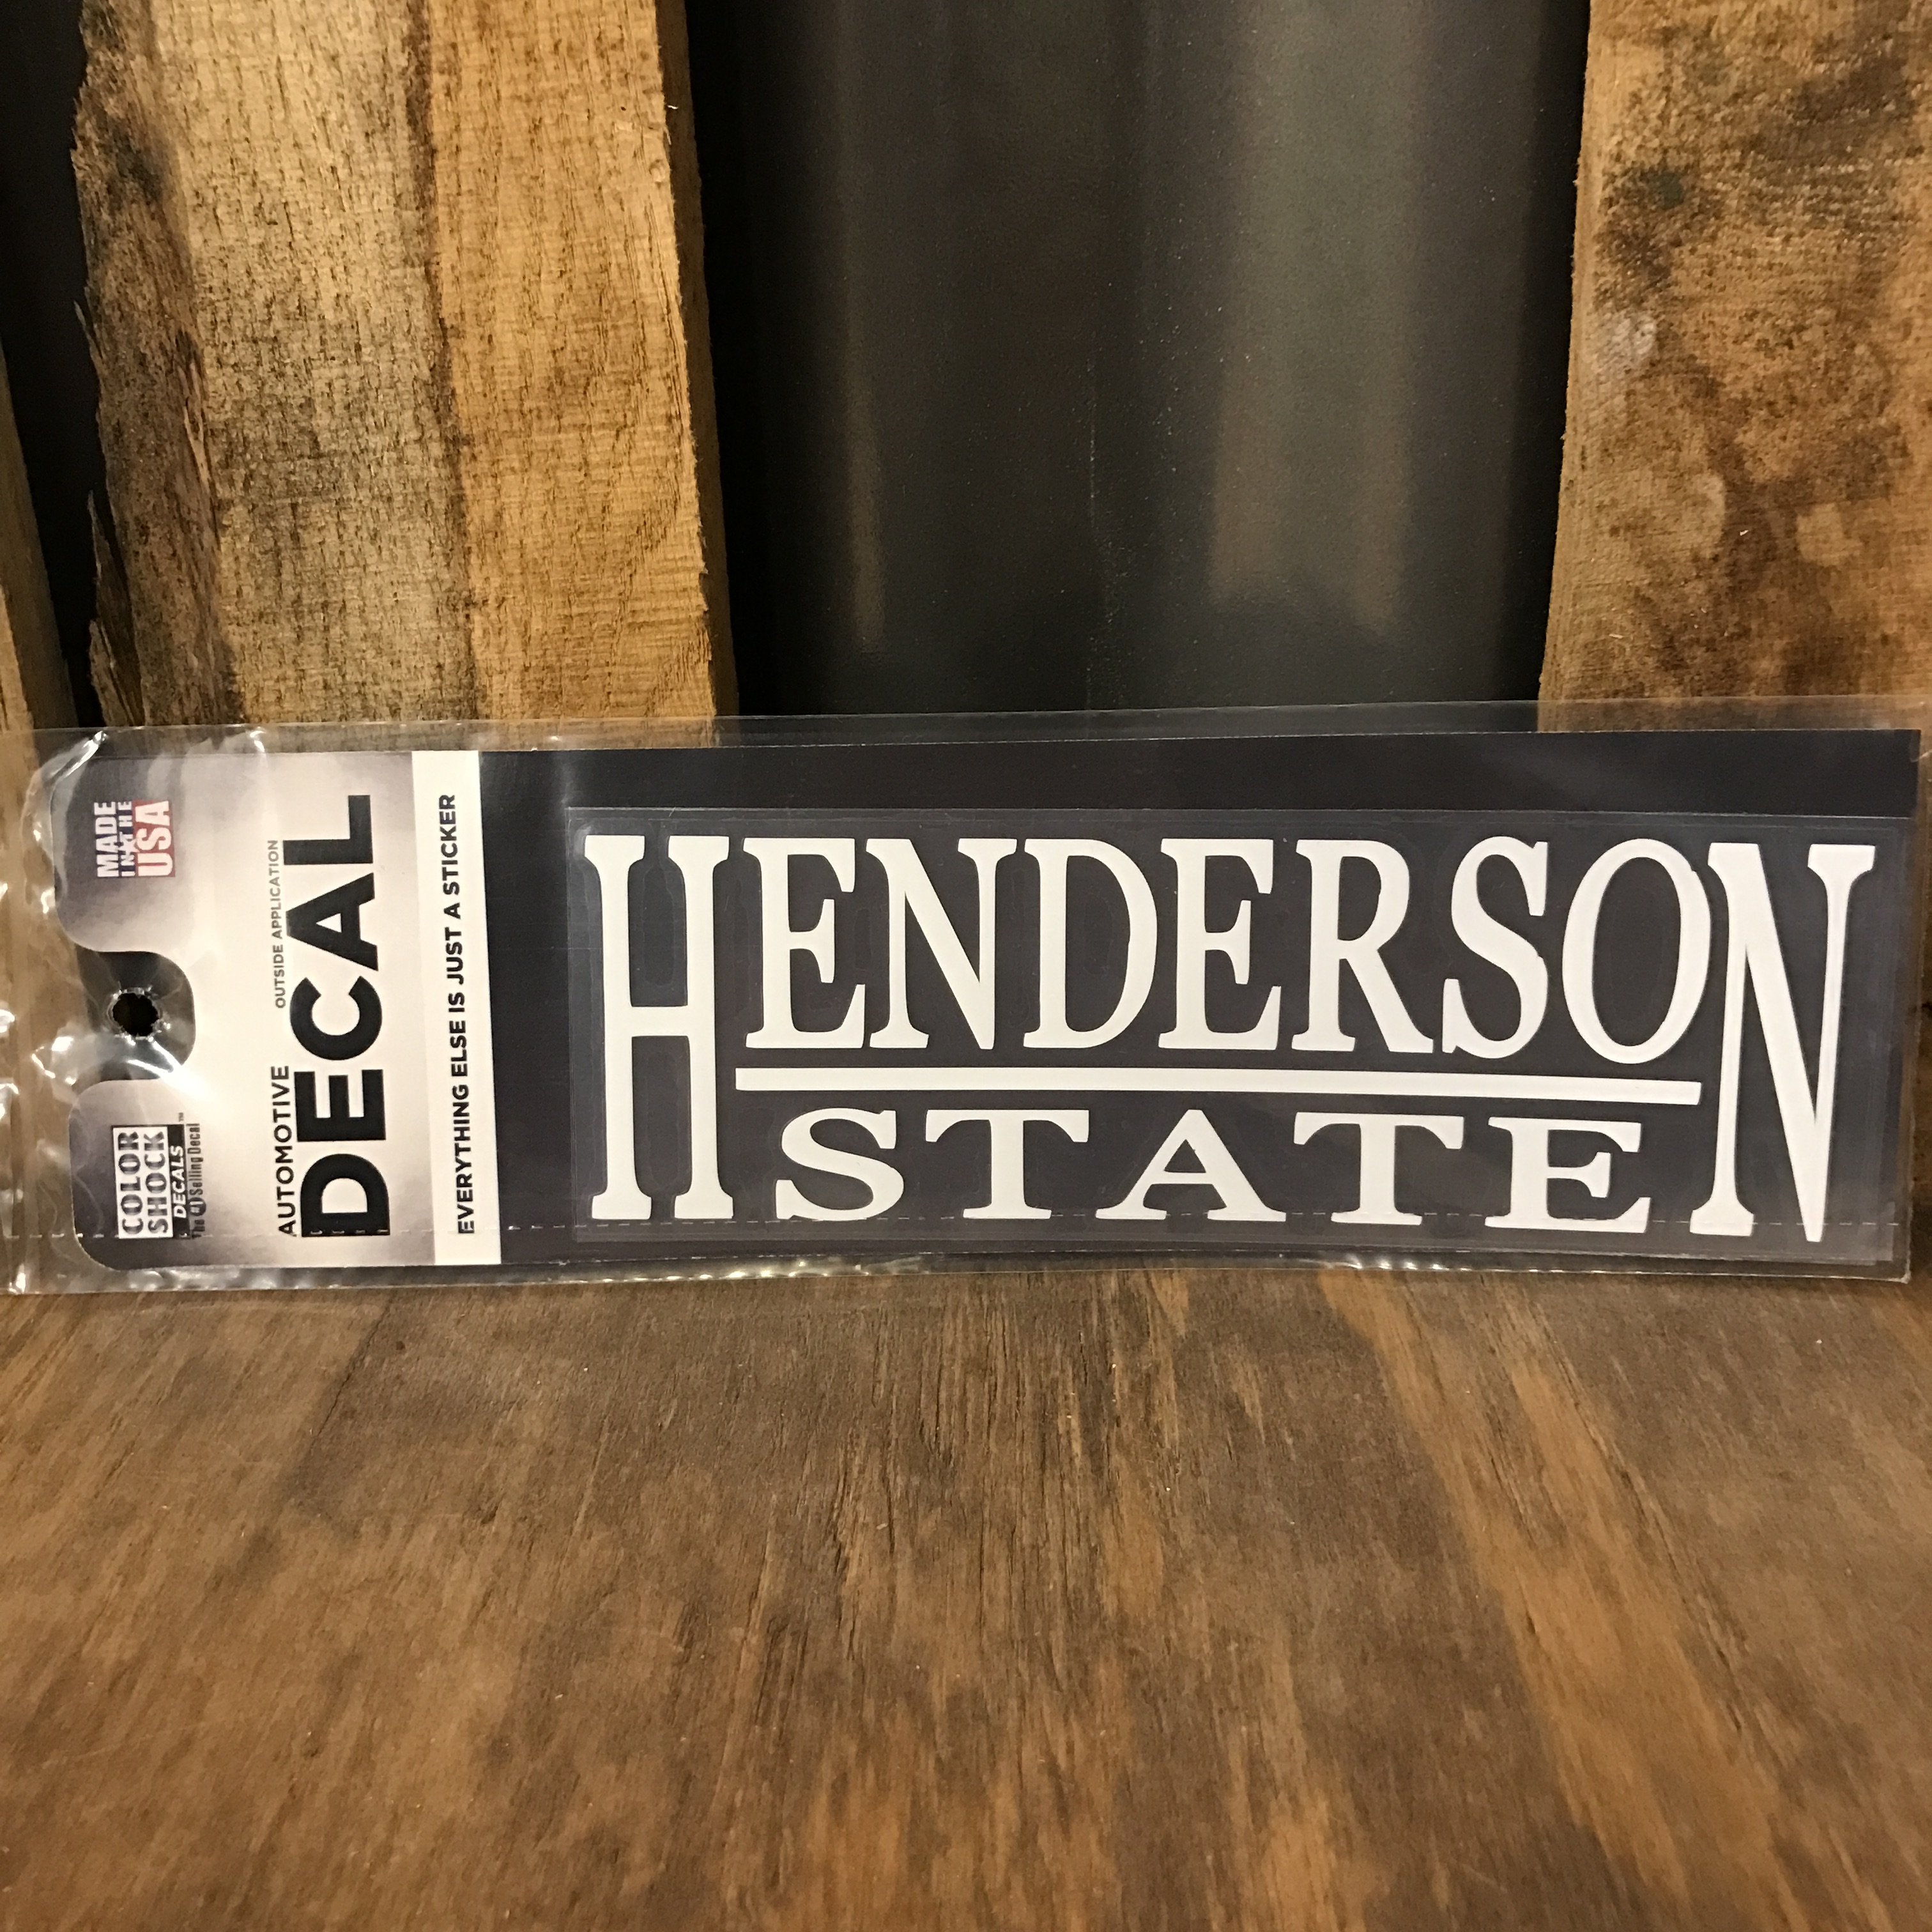 Henderson State Decal